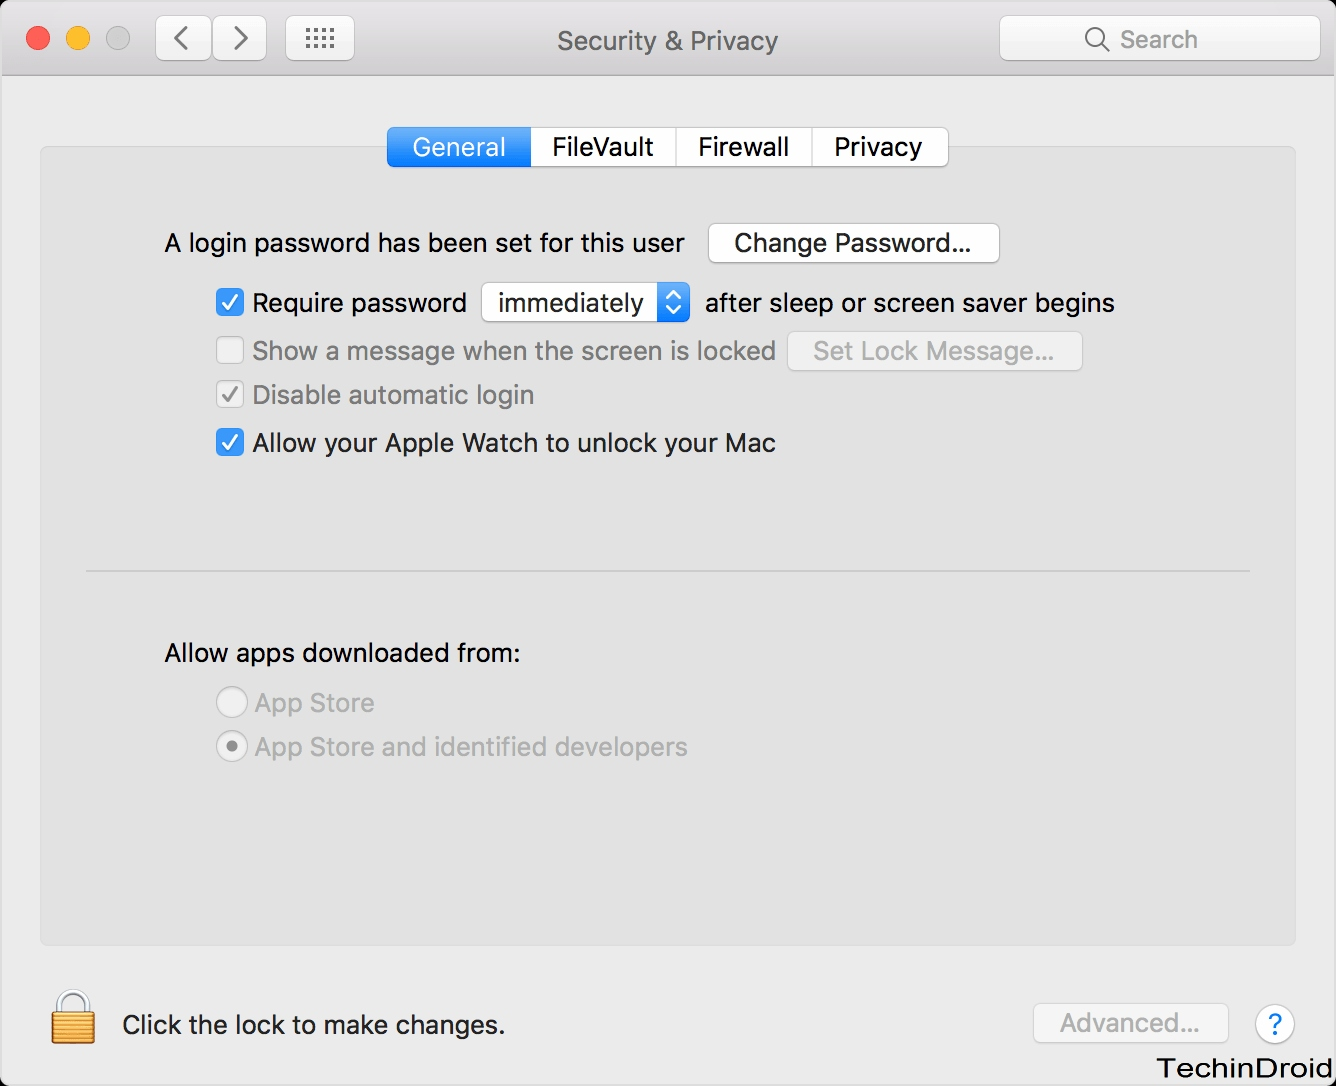 allow your apple watch to unlock your mac